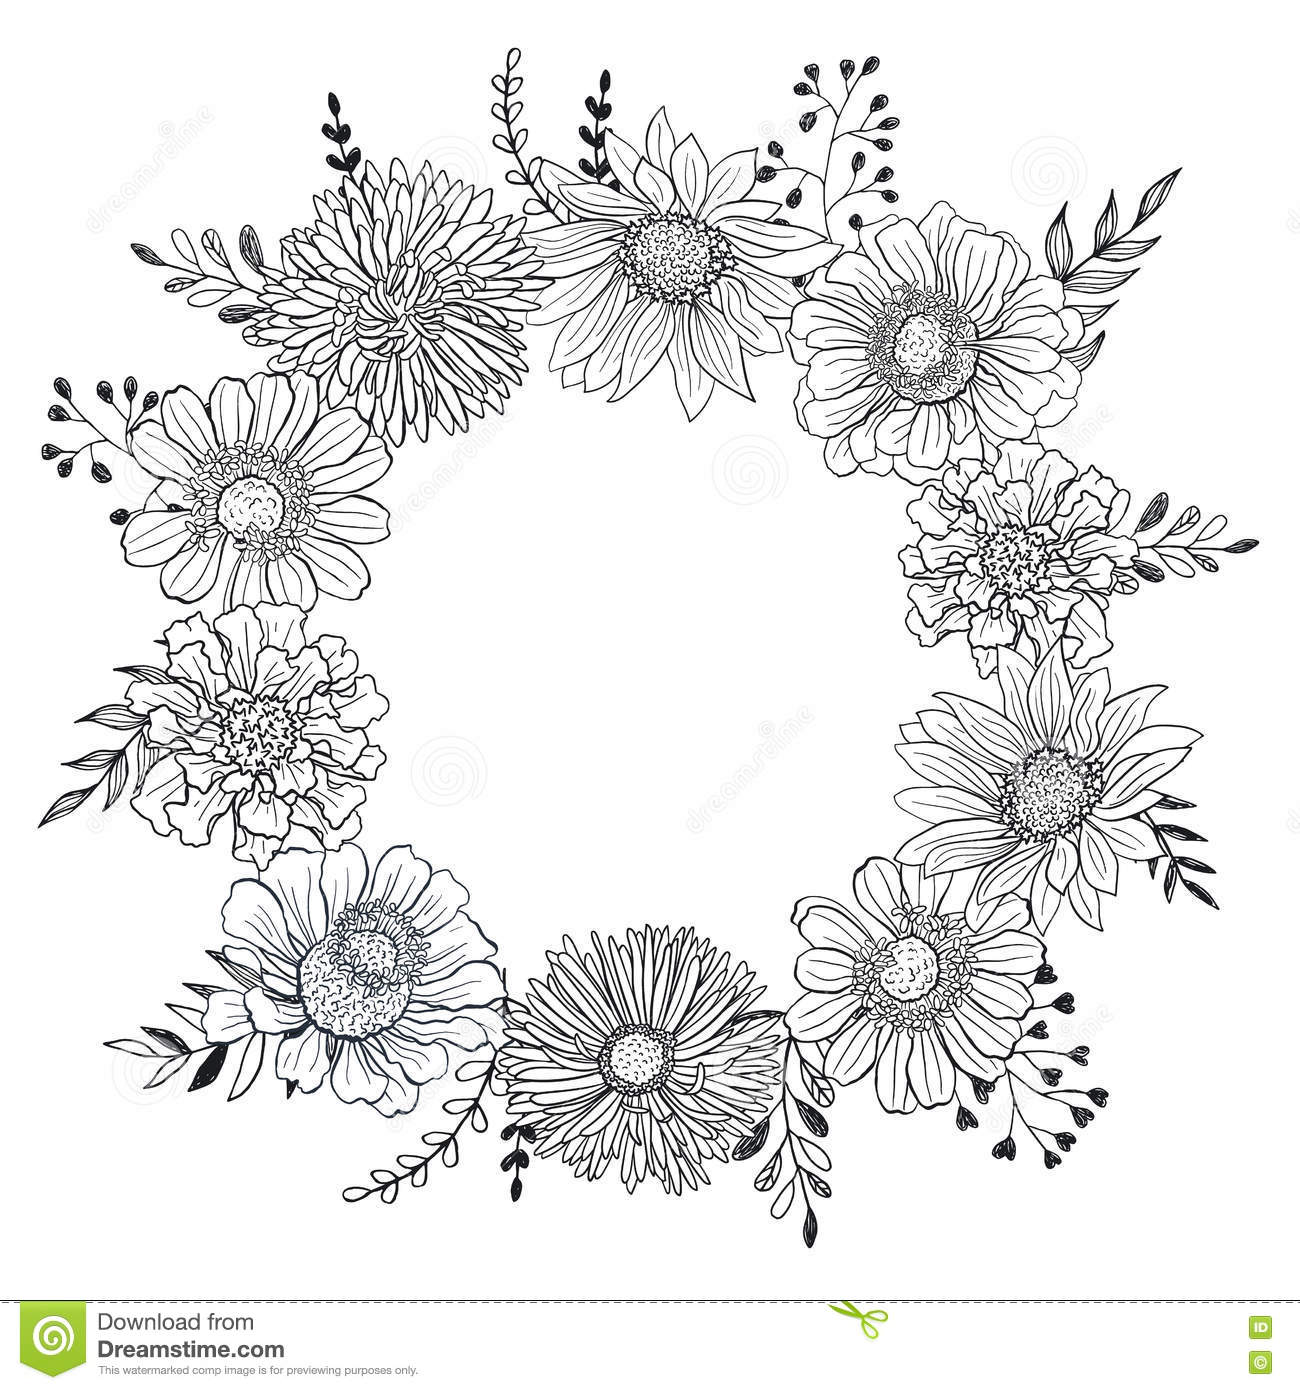 Black and white flower template gidiyedformapolitica black and white flower template mightylinksfo Image collections